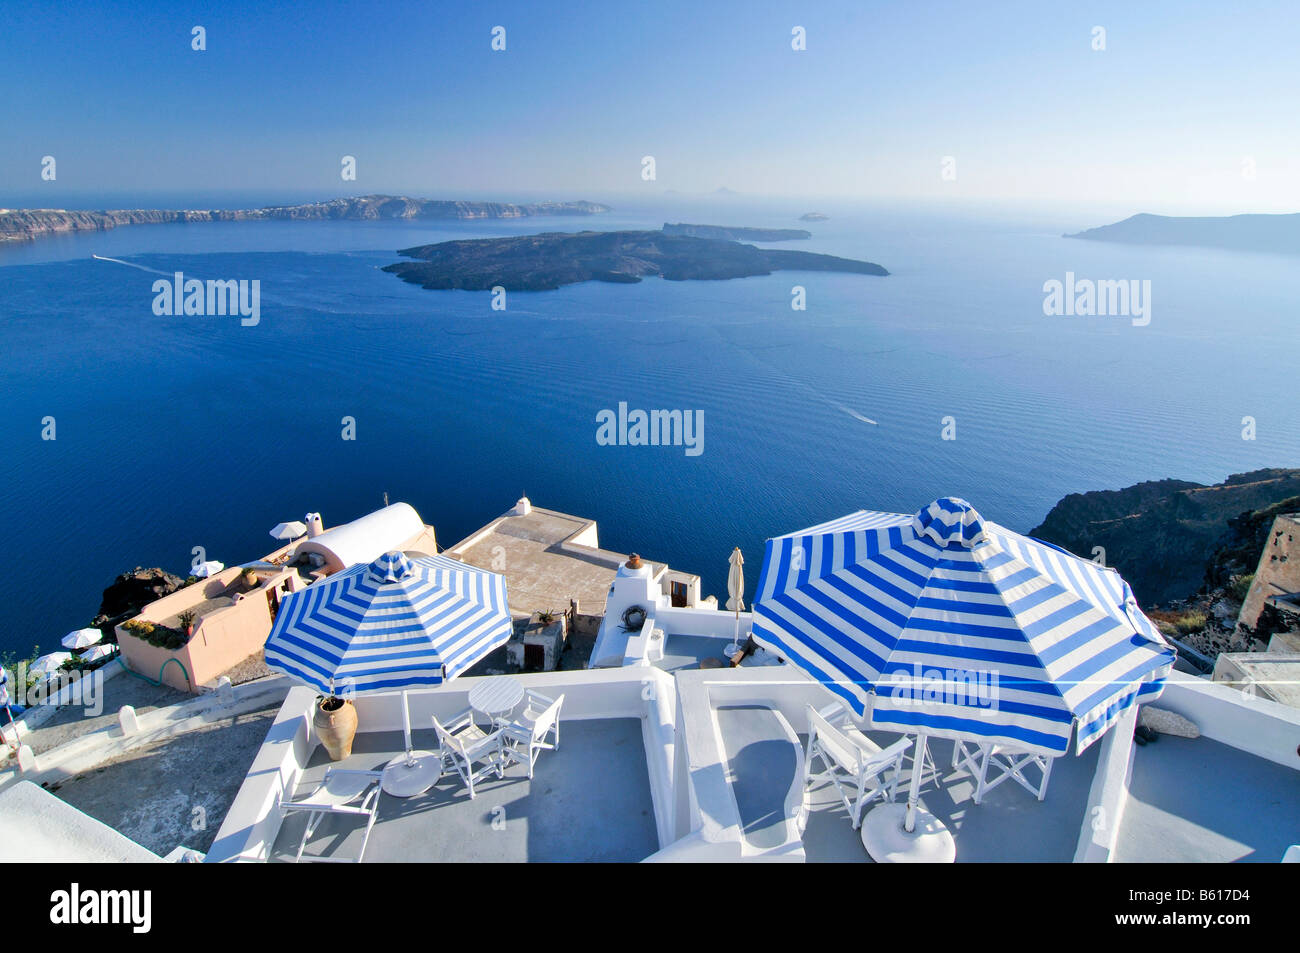 Terraces with blue and white striped sunshades in front of the blue sea and the volcanic island of Nea Kameni, Santorini - Stock Image